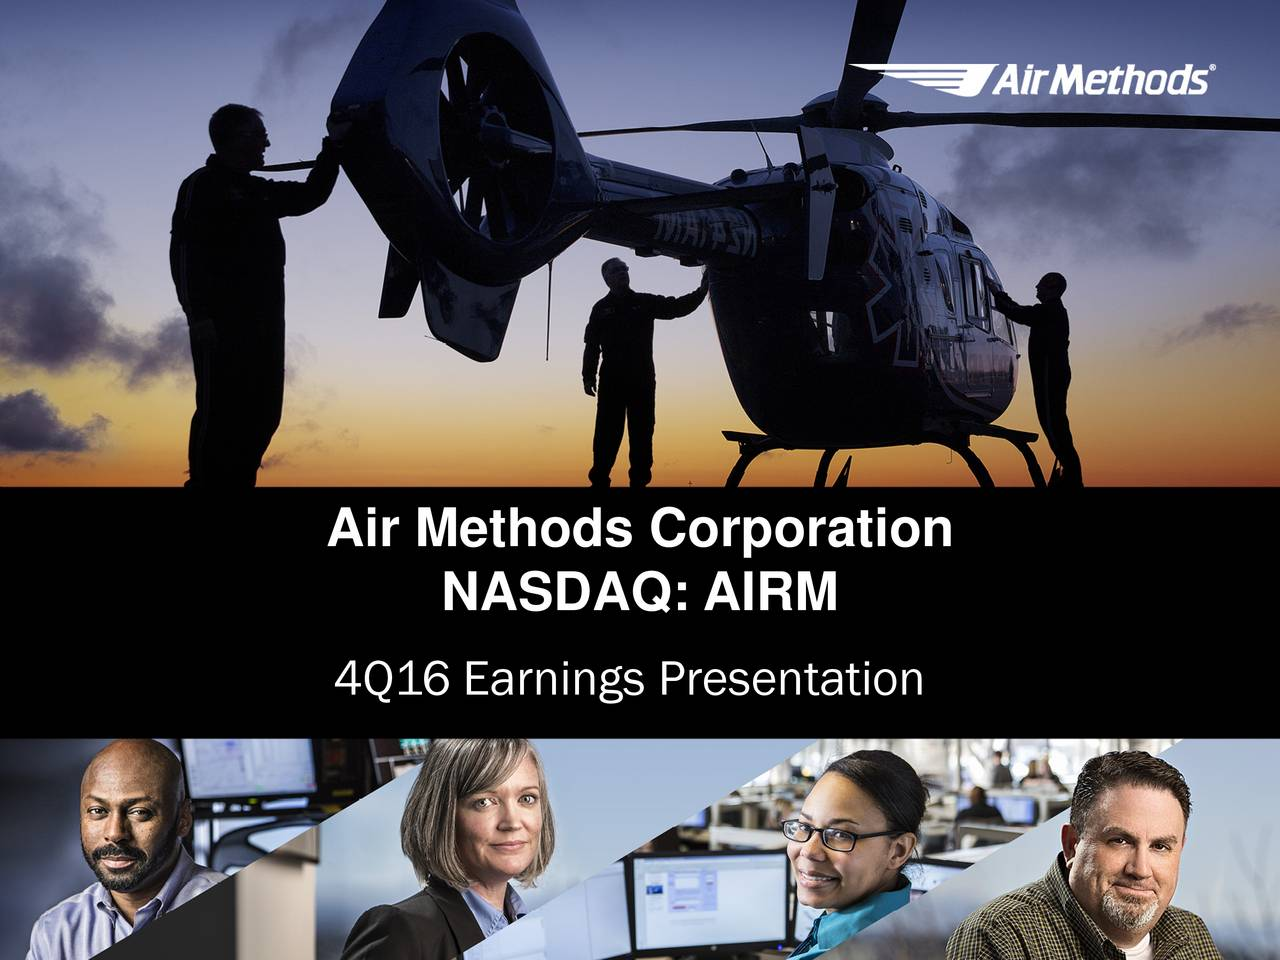 NASDAQ: AIRM 4Q16 Earnings Presentation